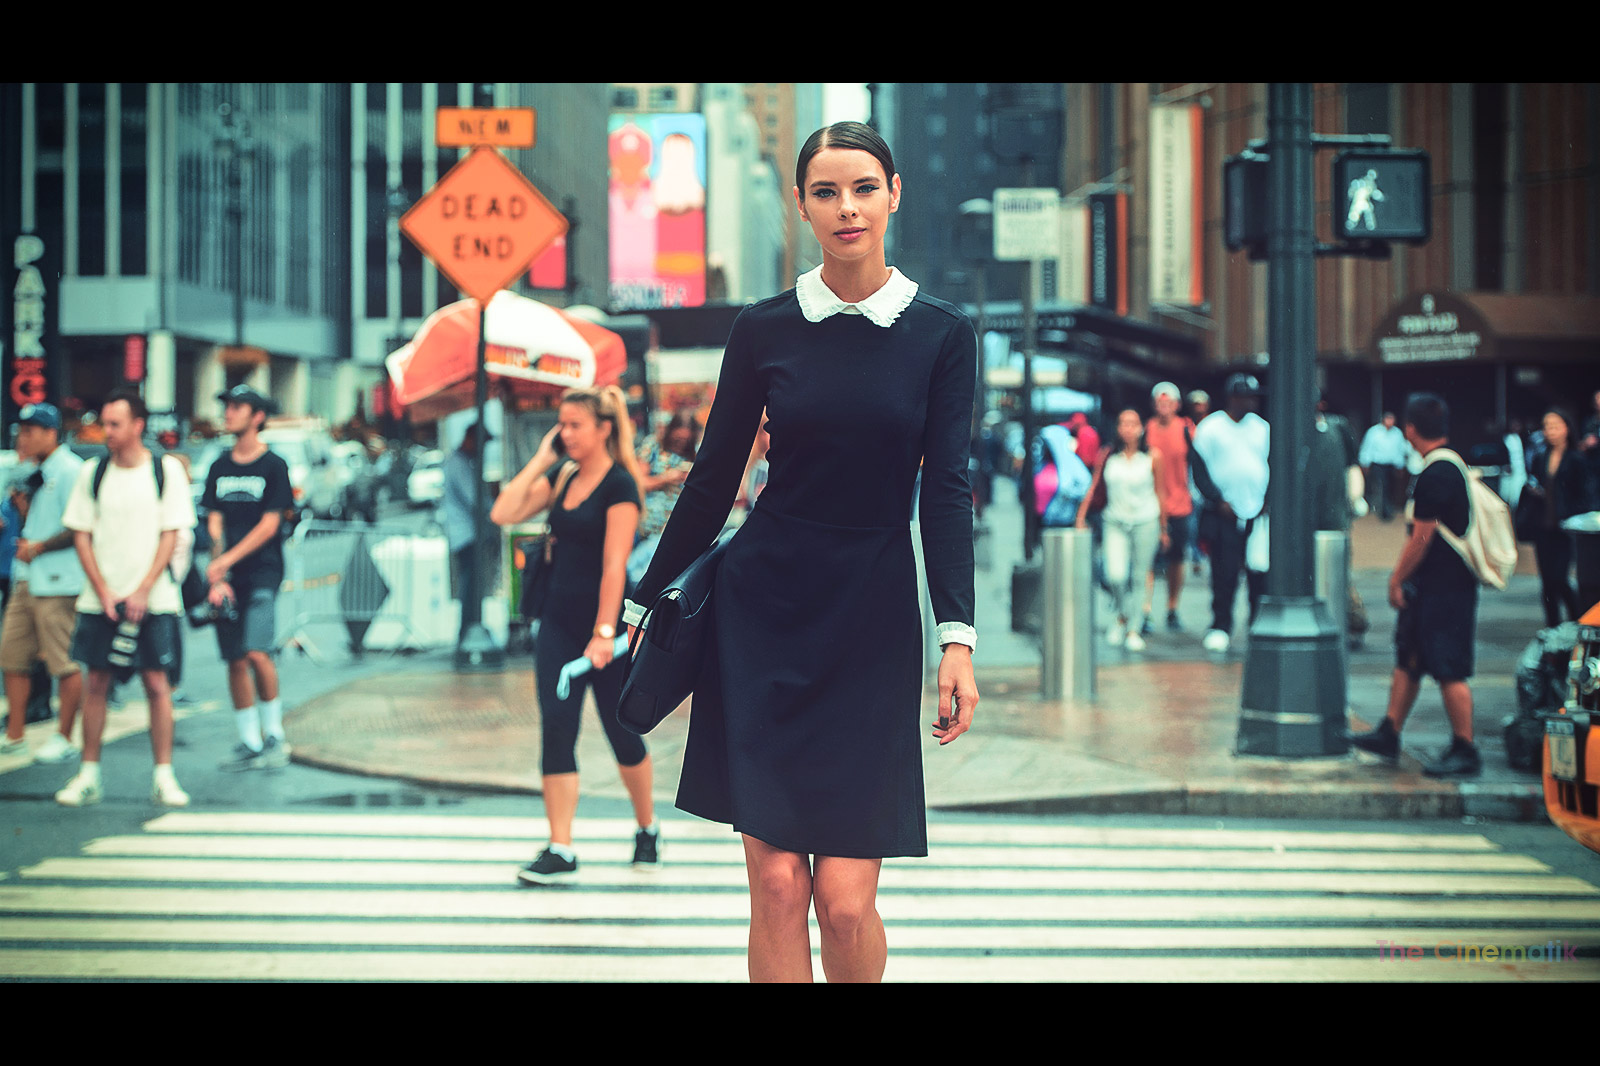 Beautiful model in tight black dress crossing the street at New York Fashion Week cinematic photograph by Kamal Lahmadi/THE CINEMATIK